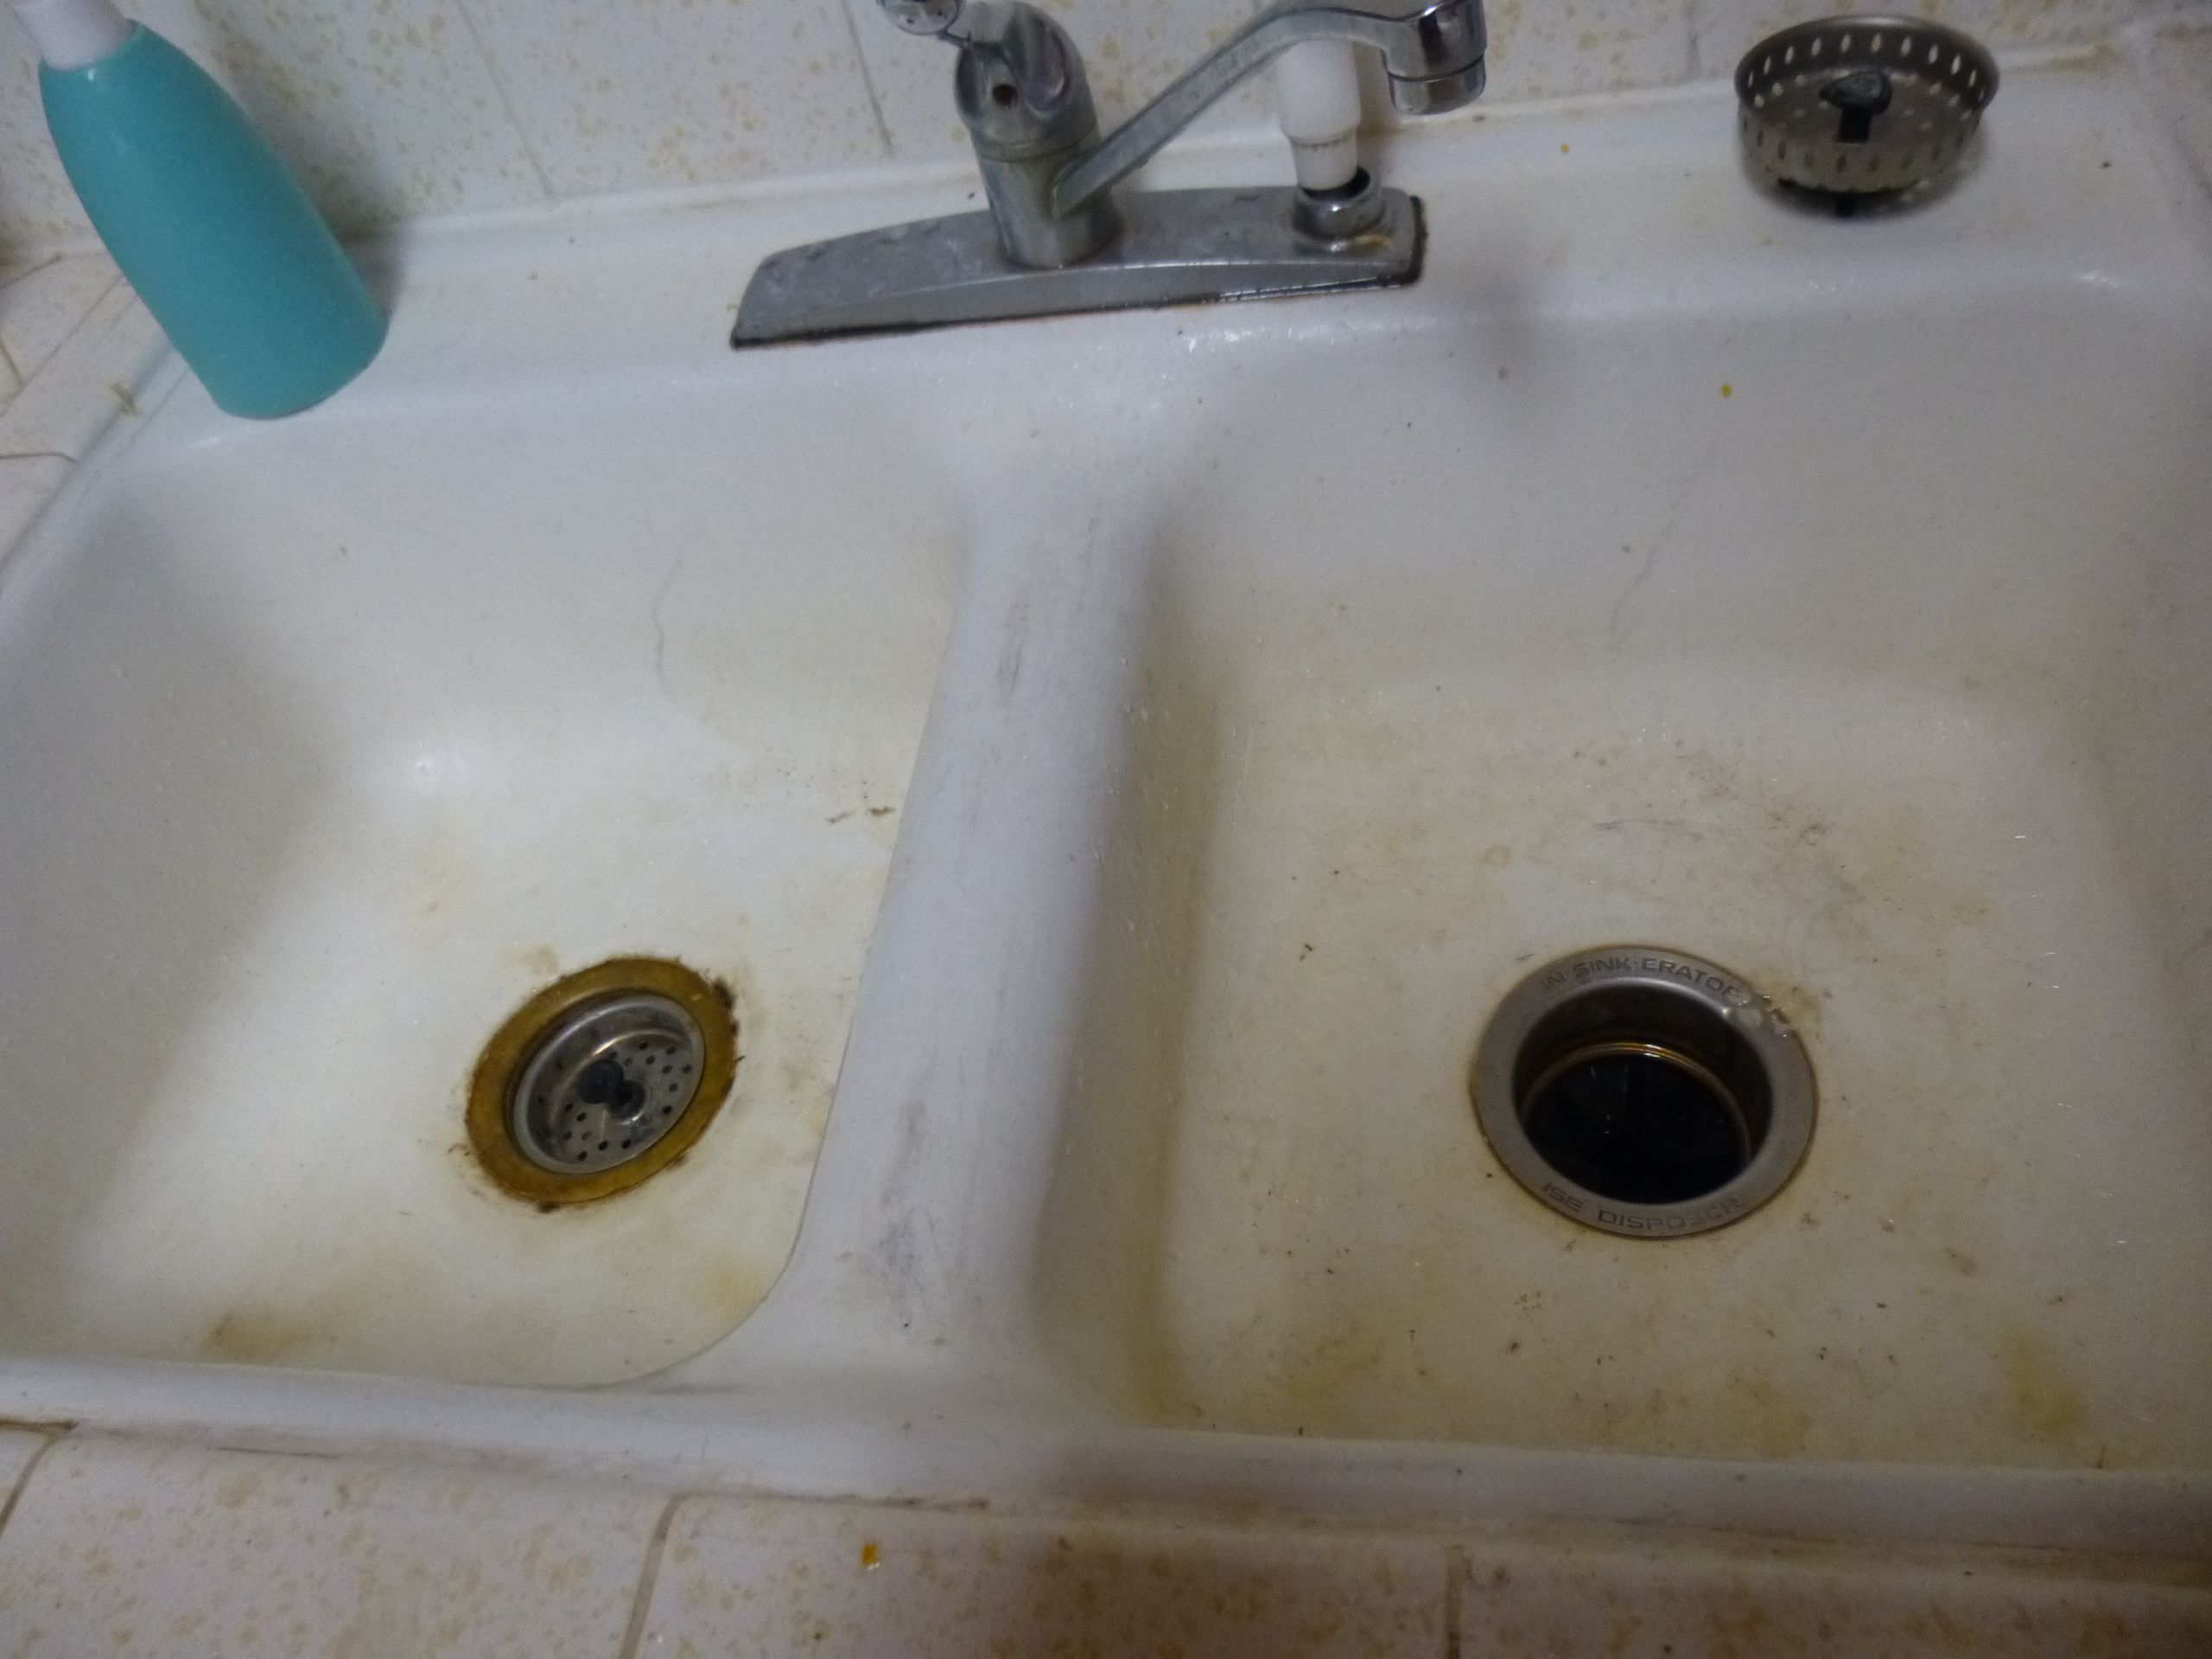 dirty kitchen sink, drain, grime, faucet | Interiors | Pinterest ...